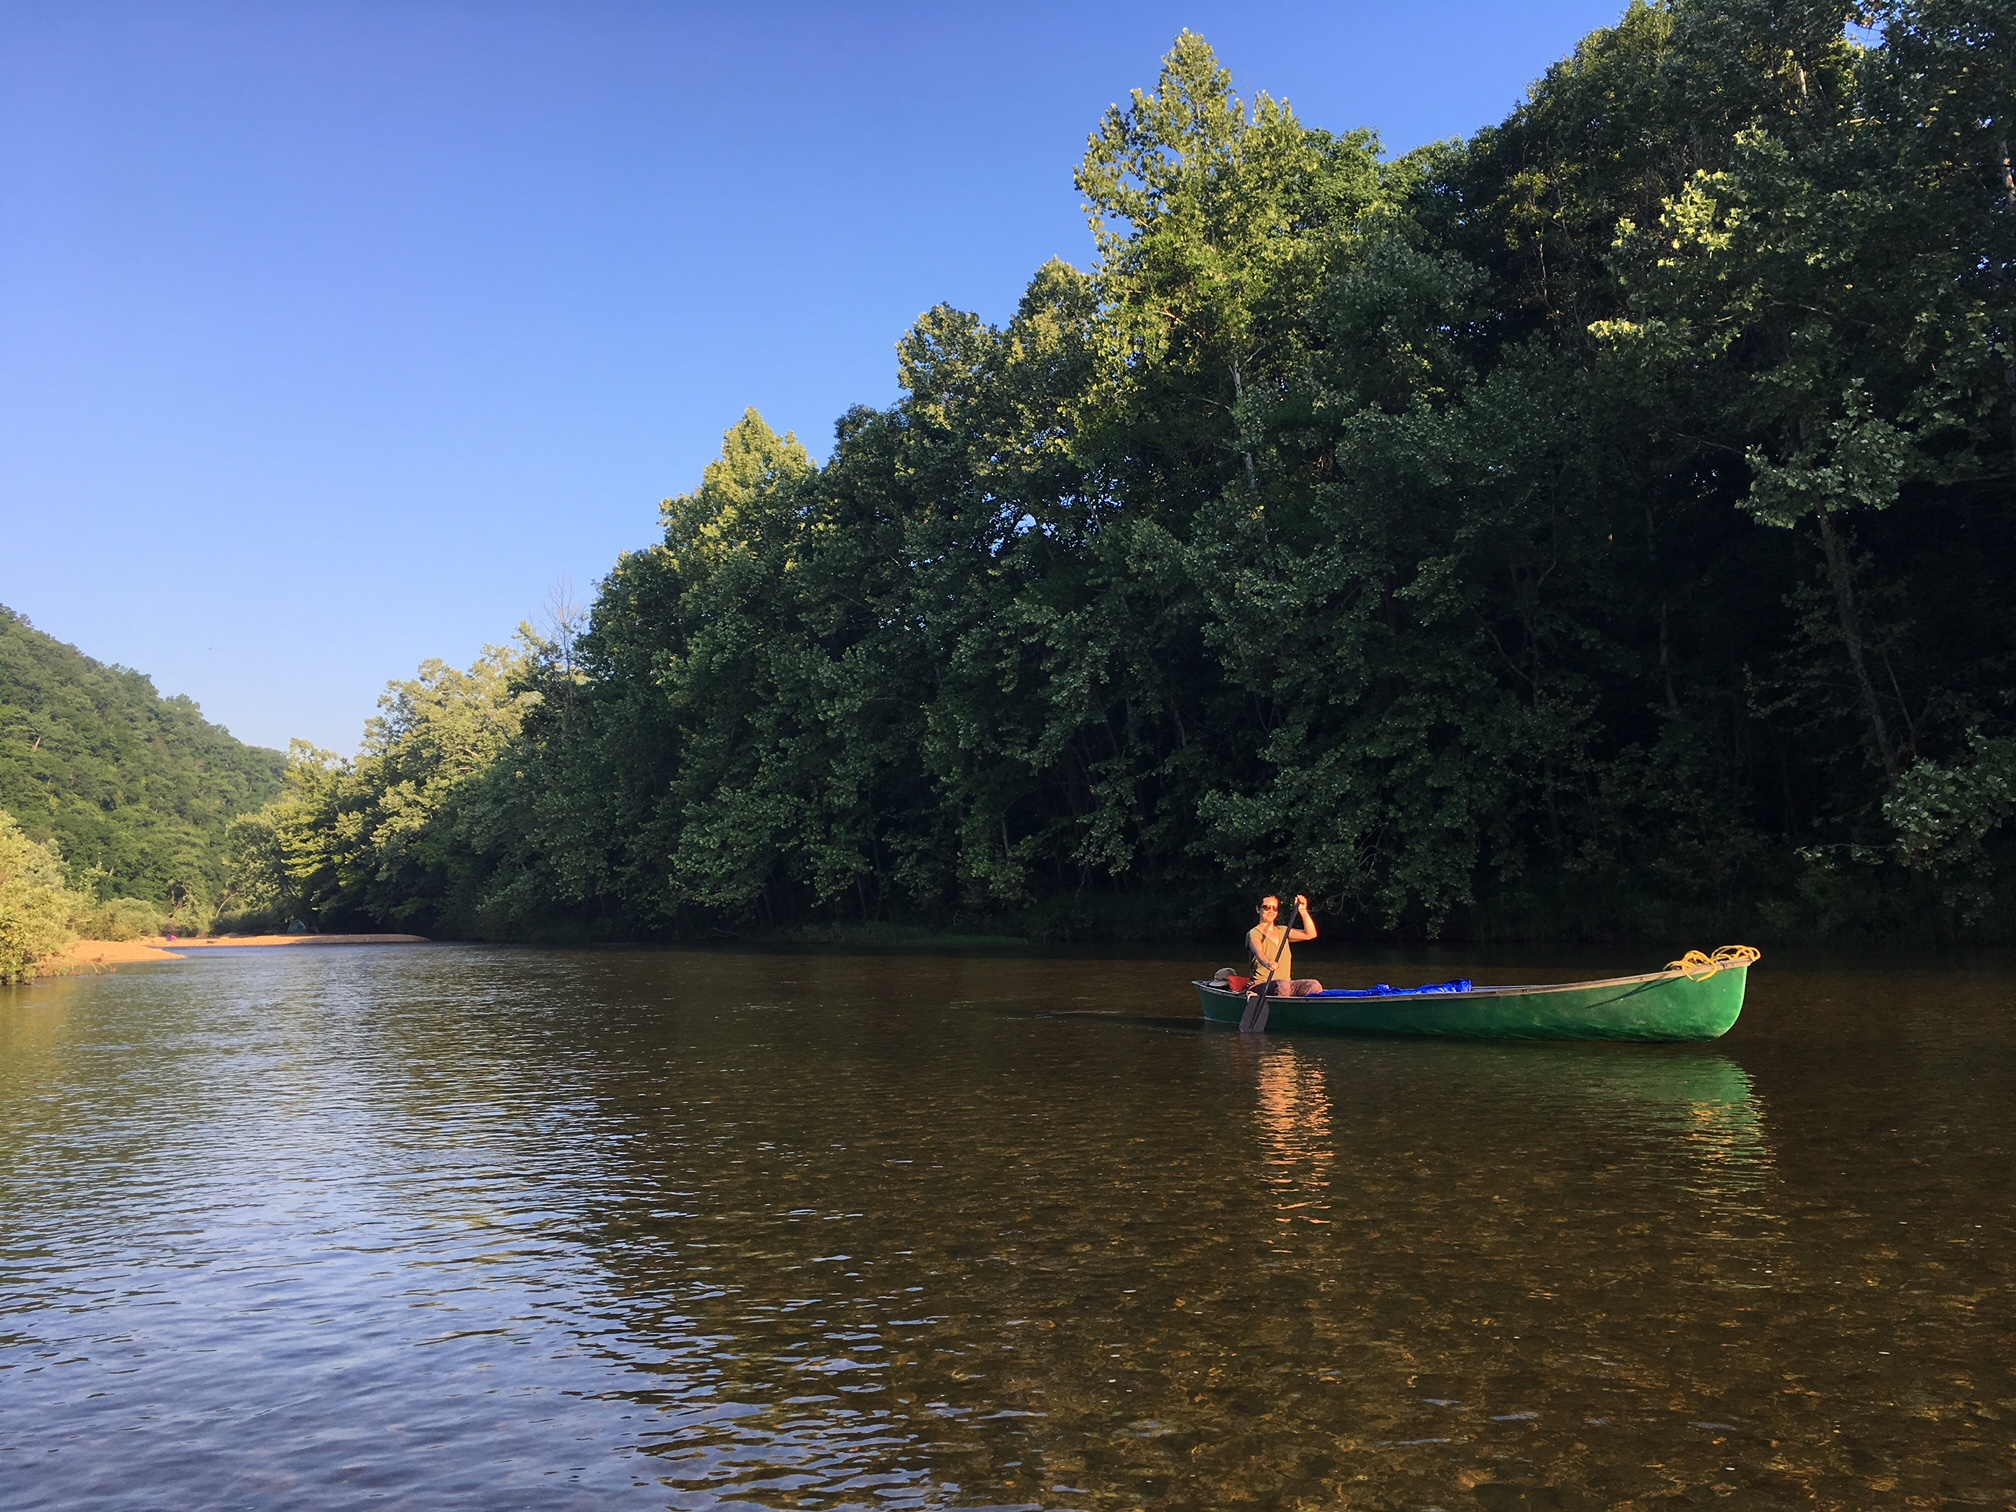 Enjoy floating and fishing on the Jacks Fork River, one of the most scenic and beautiful rivers in the country.